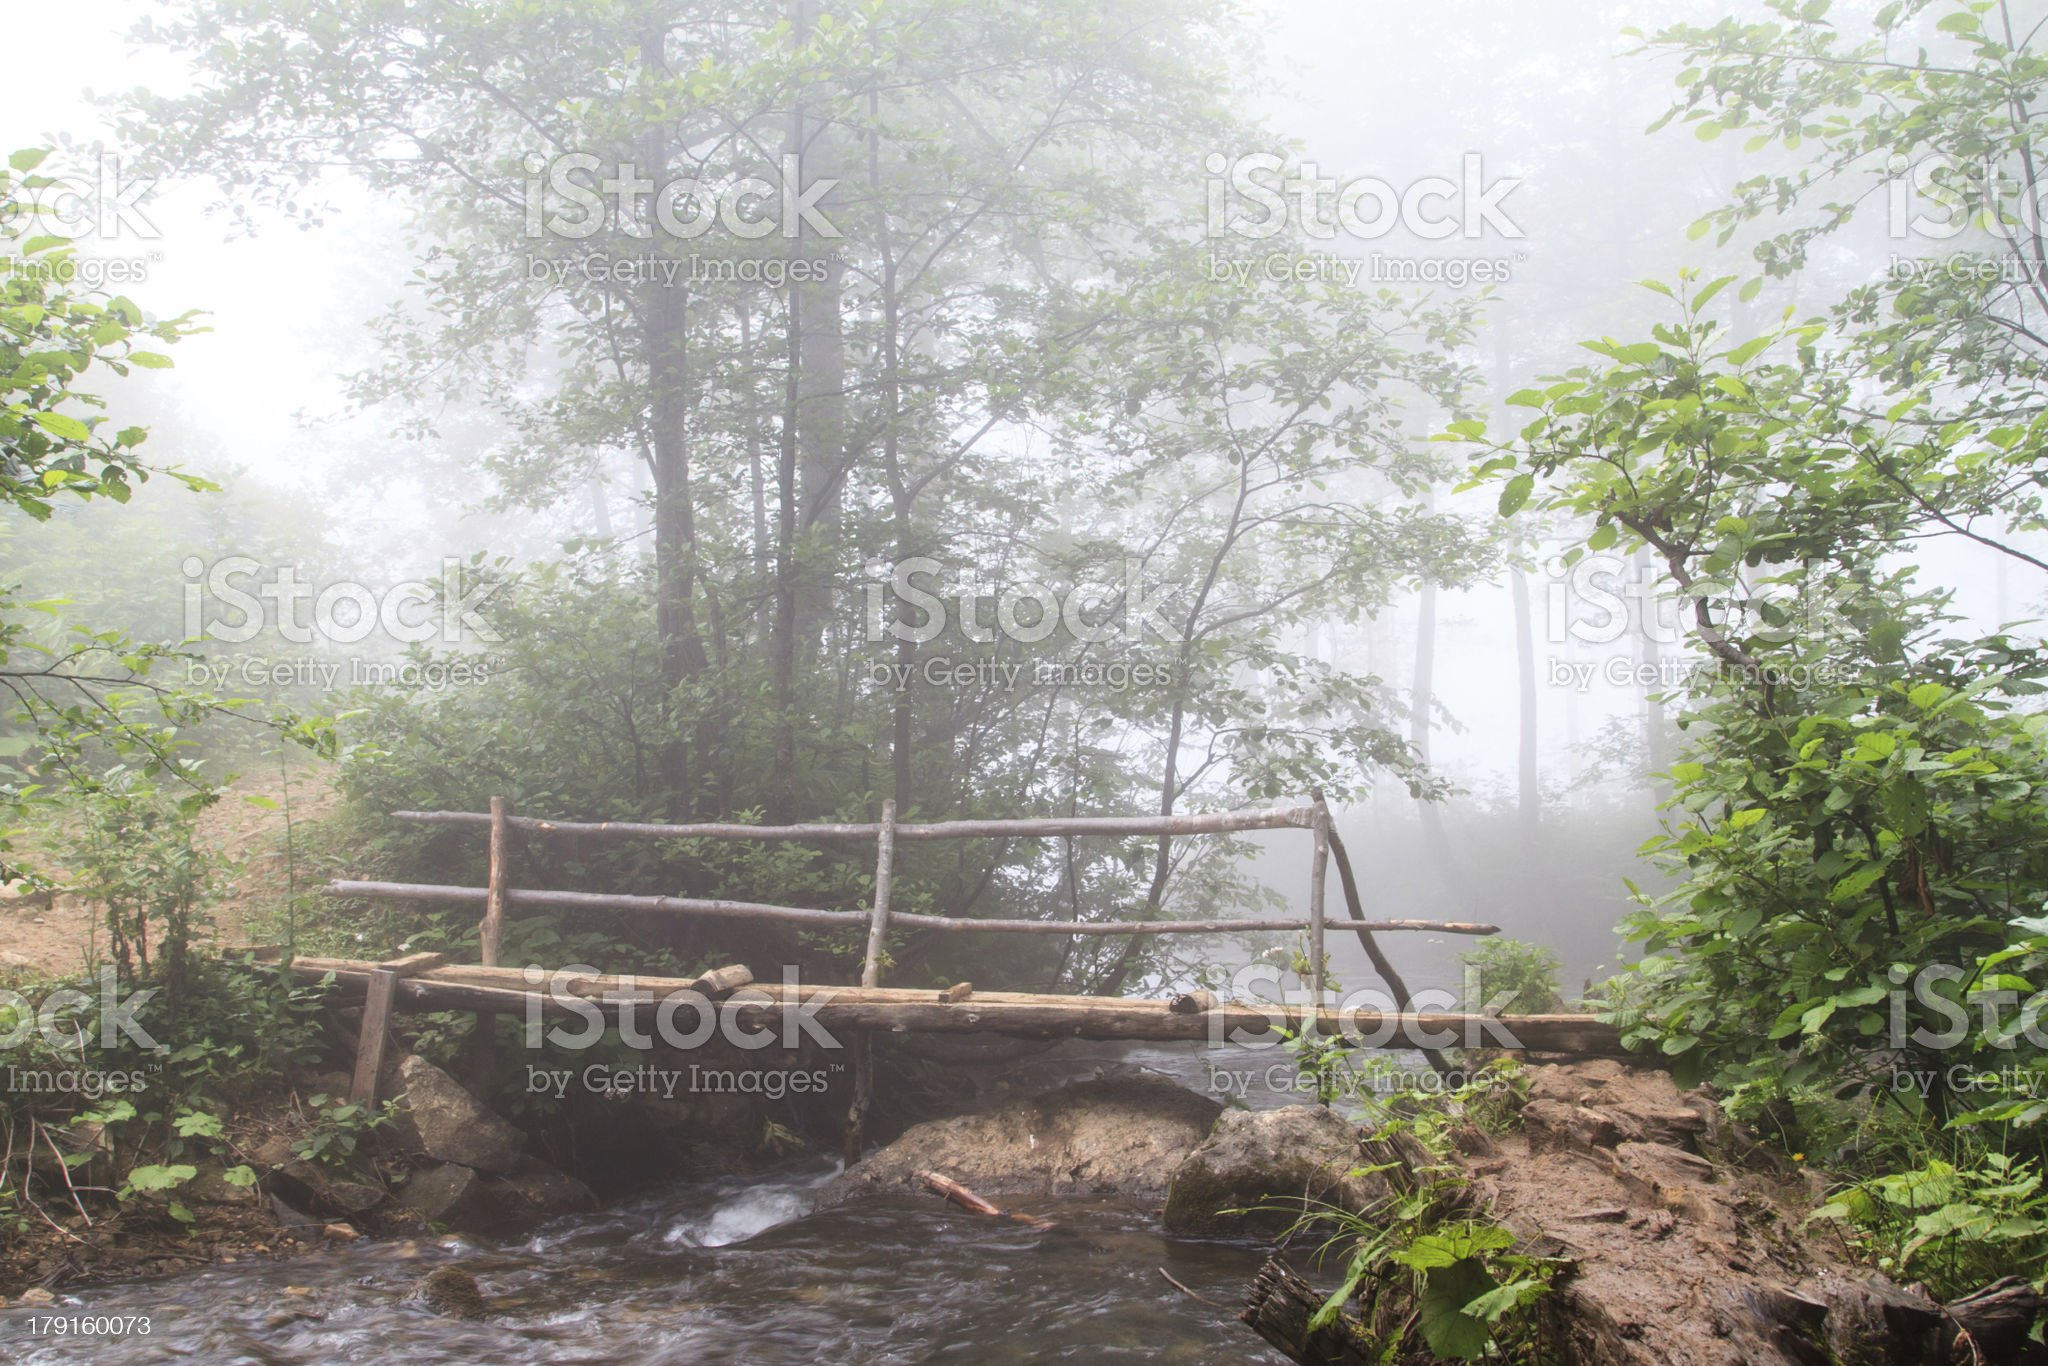 Foggy Forest and Bridge over Stream royalty-free stock photo